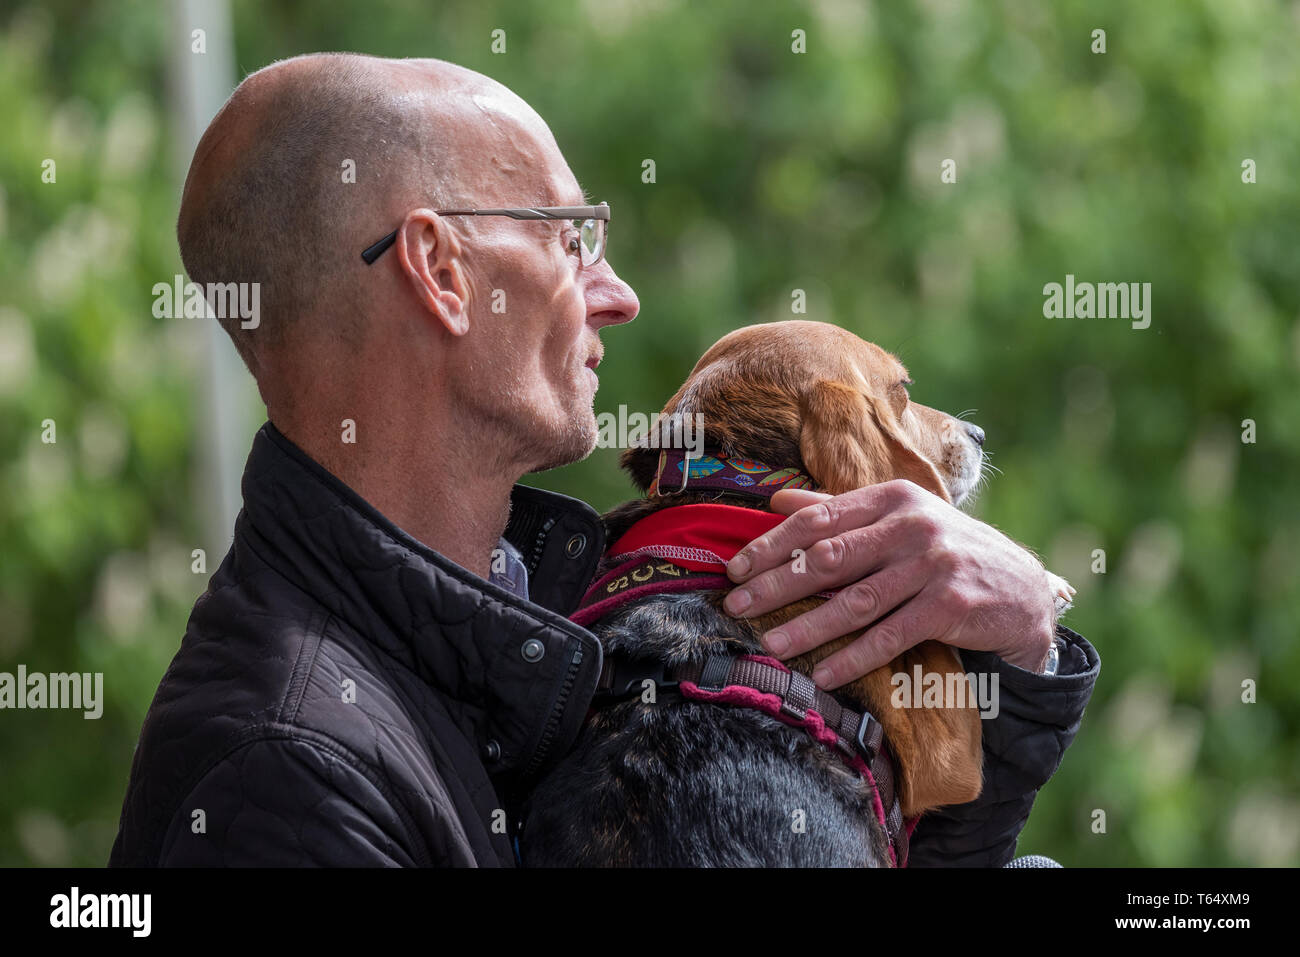 Oxford World Day for Animals in Laboratories. Animal rights activist Mel Broughton holding Scarlett, a rescued beagle, now leading a contented life. - Stock Image